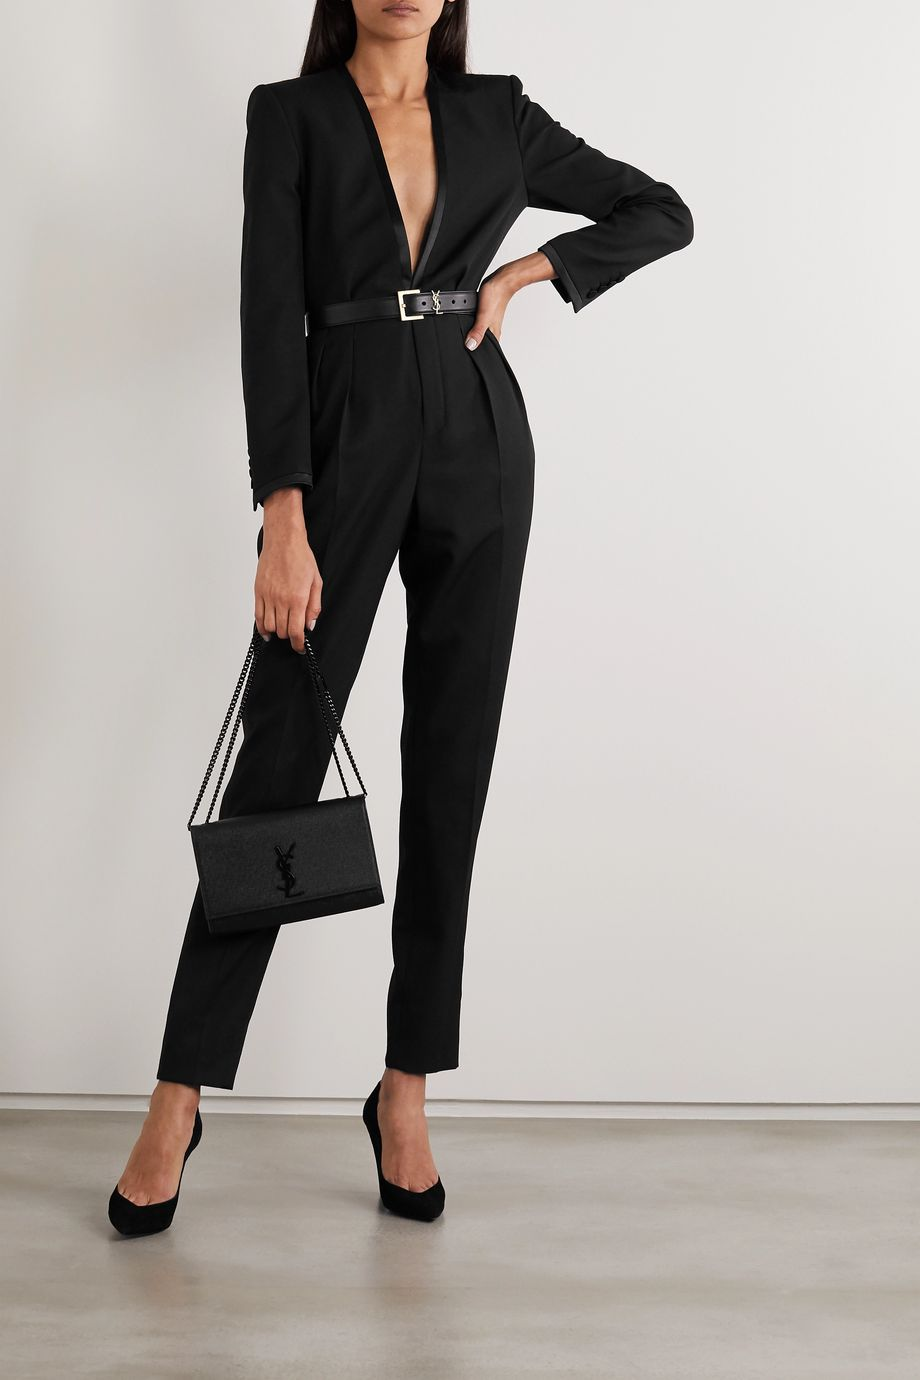 SAINT LAURENT Satin-trimmed wool-crepe jumpsuit